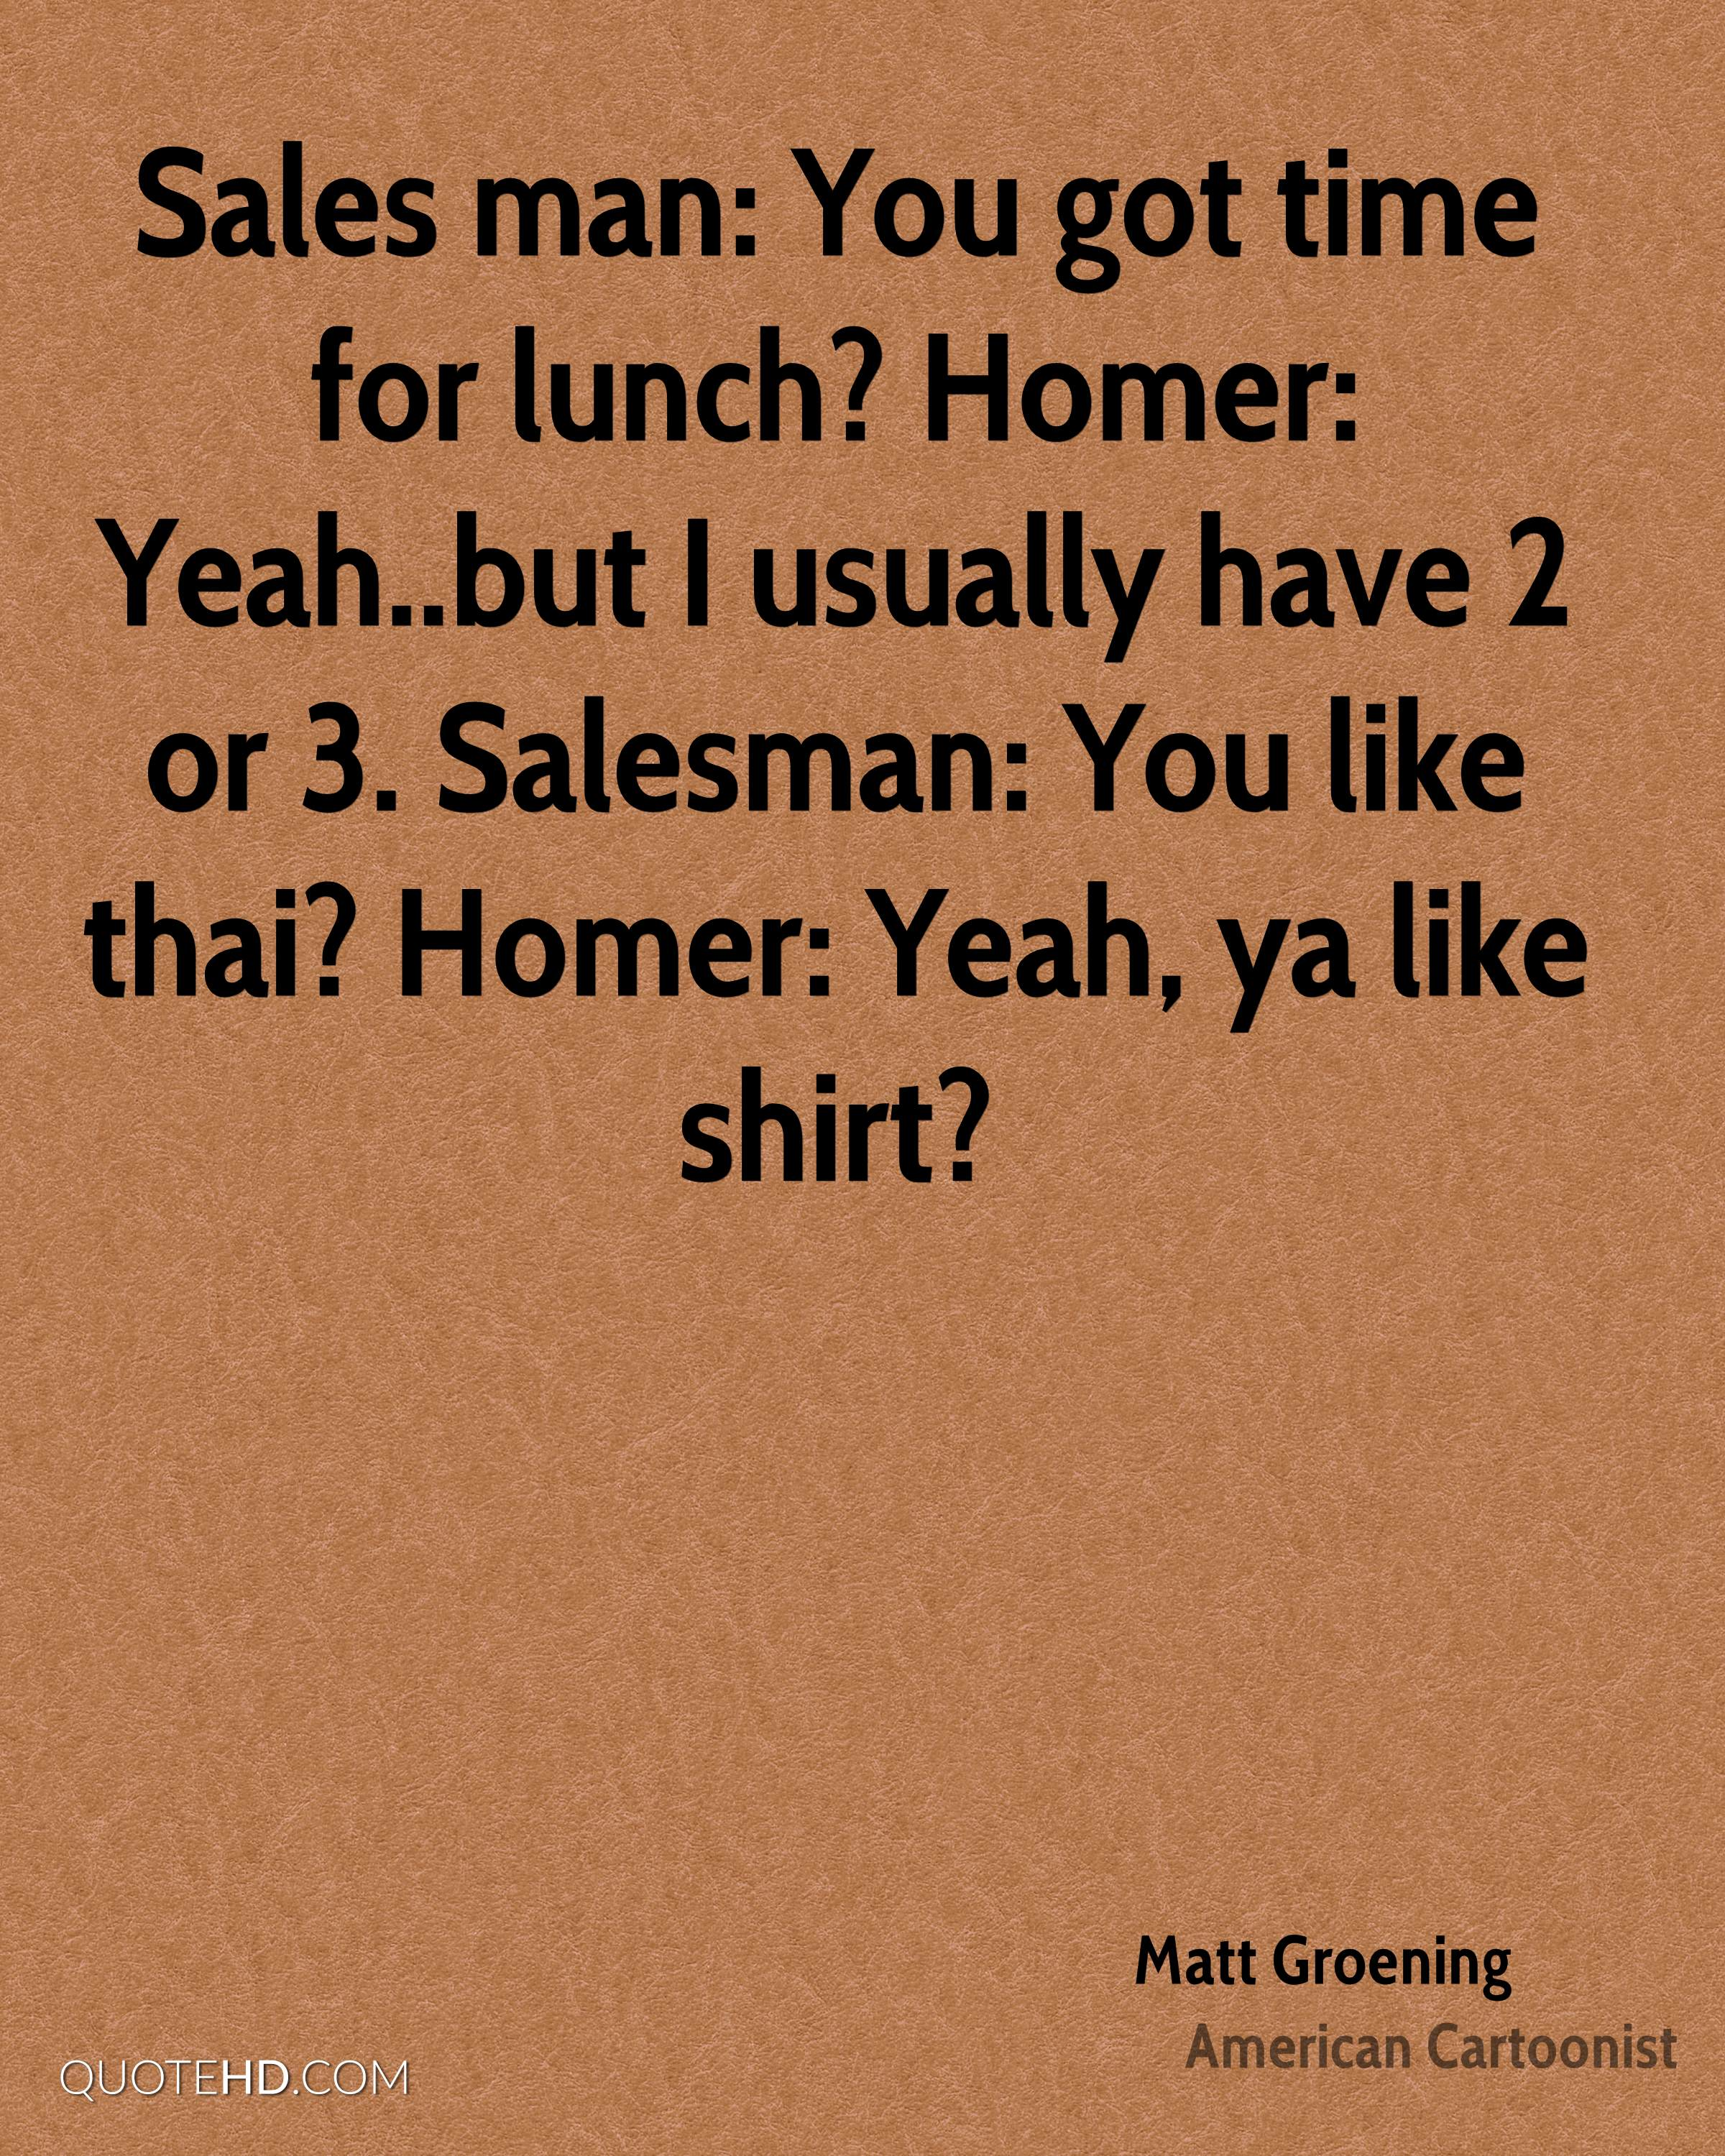 Sales man: You got time for lunch? Homer: Yeah..but I usually have 2 or 3. Salesman: You like thai? Homer: Yeah, ya like shirt?